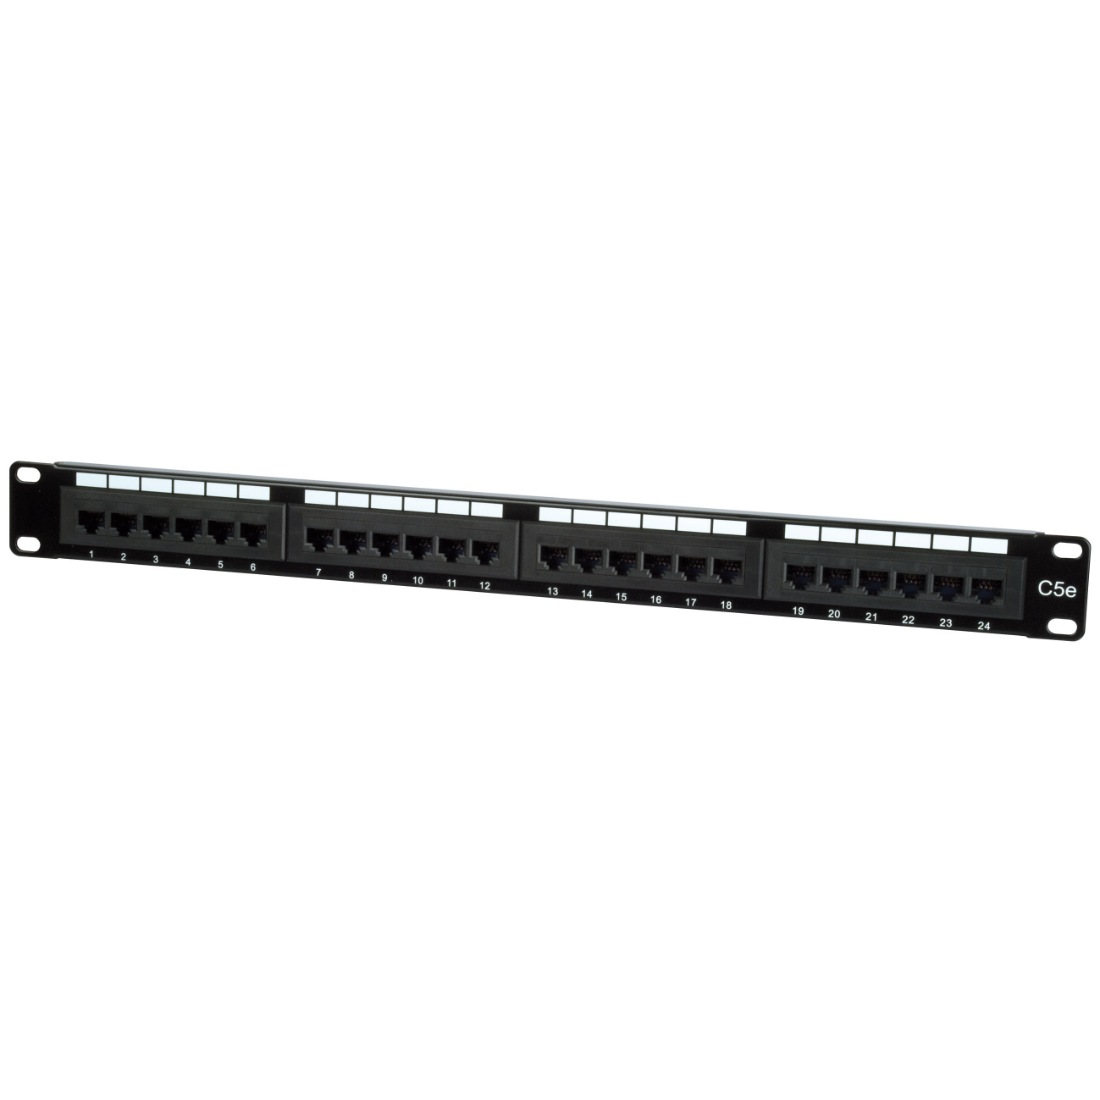 Philex 19 1u 24 Port Utp Cat5e Patch Panel